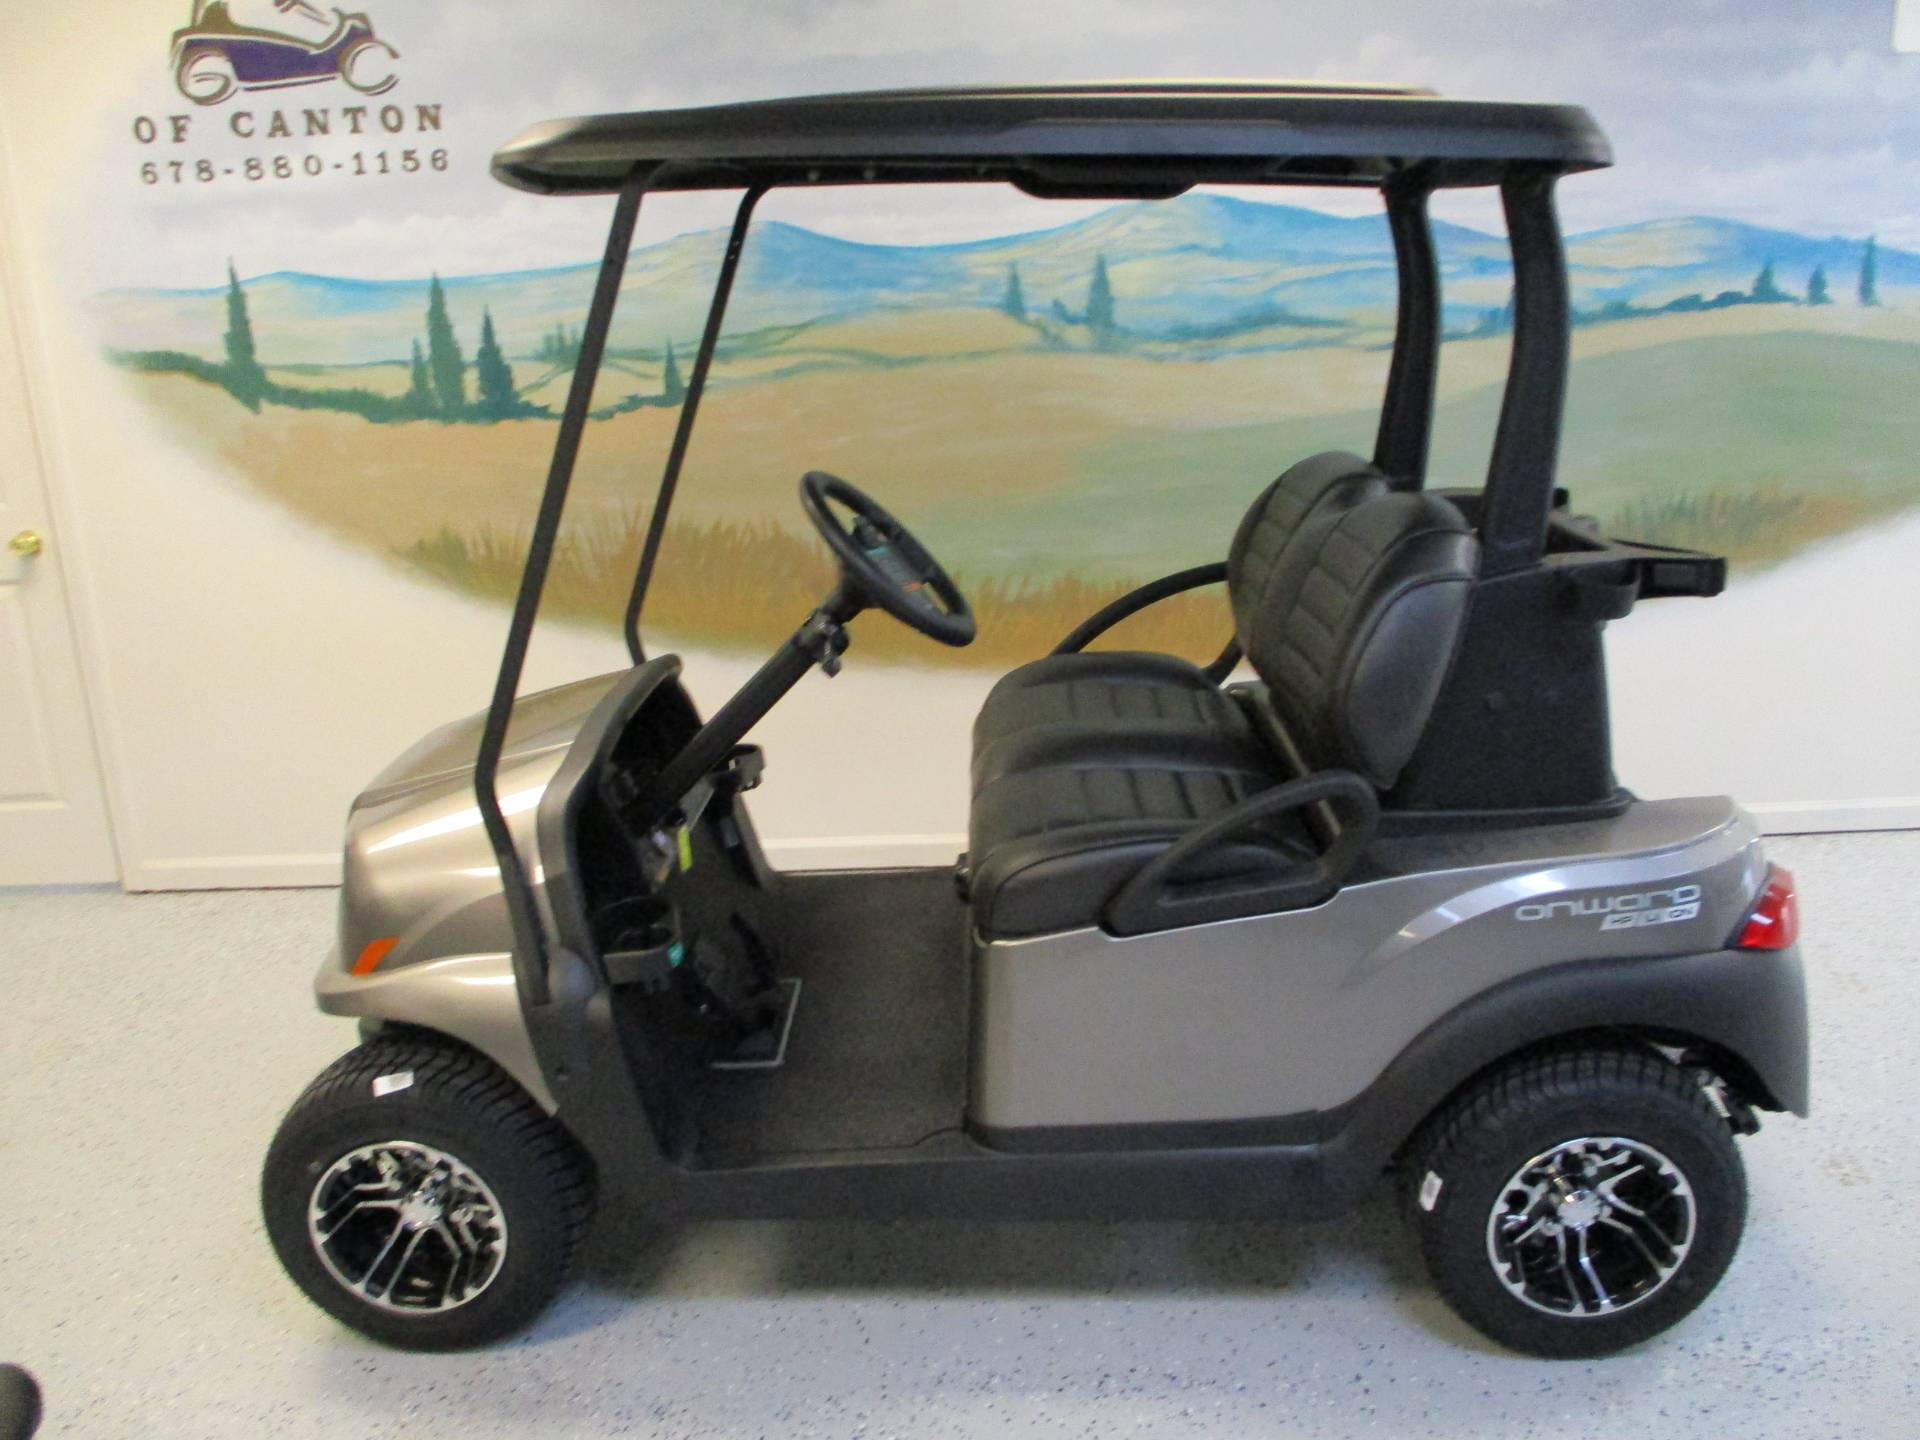 2020 Club Car Onward 2 Passenger Lithium Ion in Canton, Georgia - Photo 1